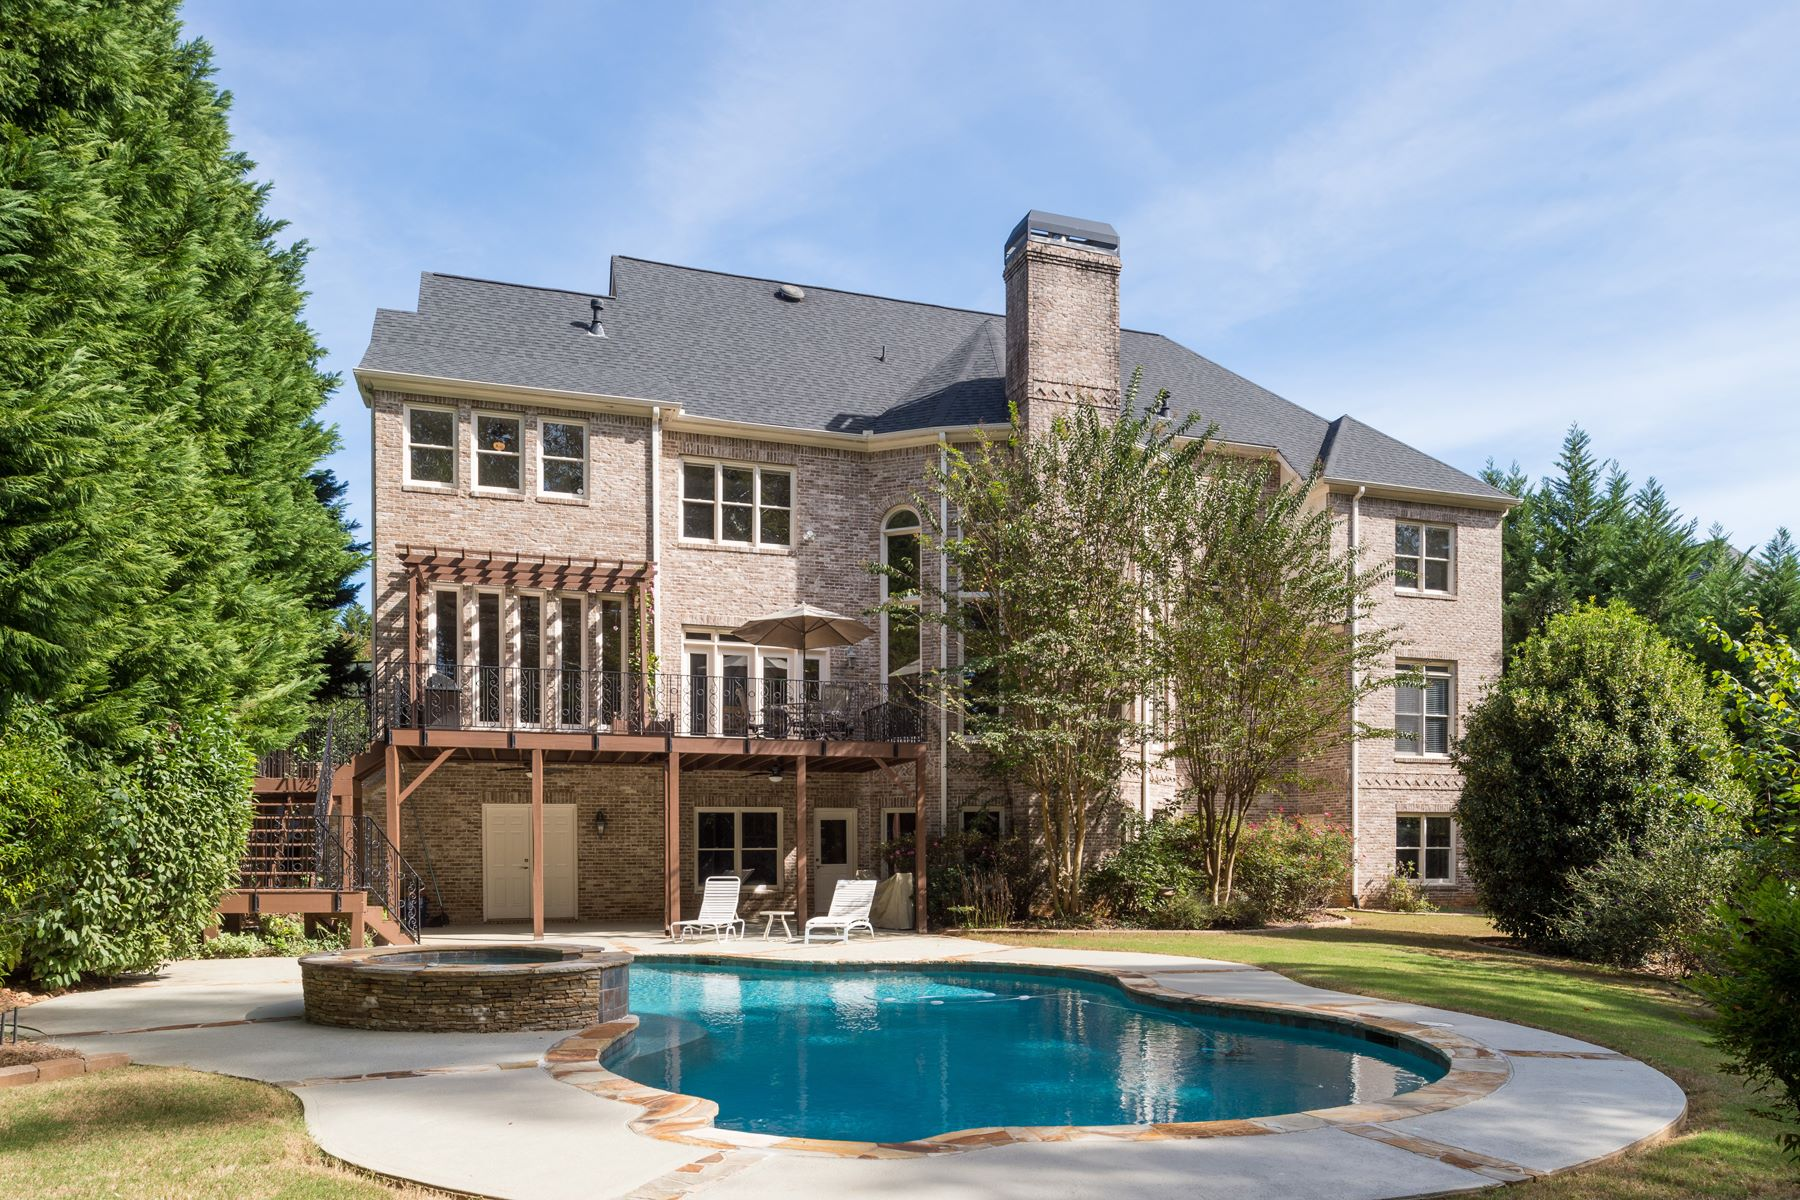 Single Family Home for Sale at Stunning Brick Beauty off Papermill Road! 30 Sherwood Lane SE Marietta, Georgia 30067 United States